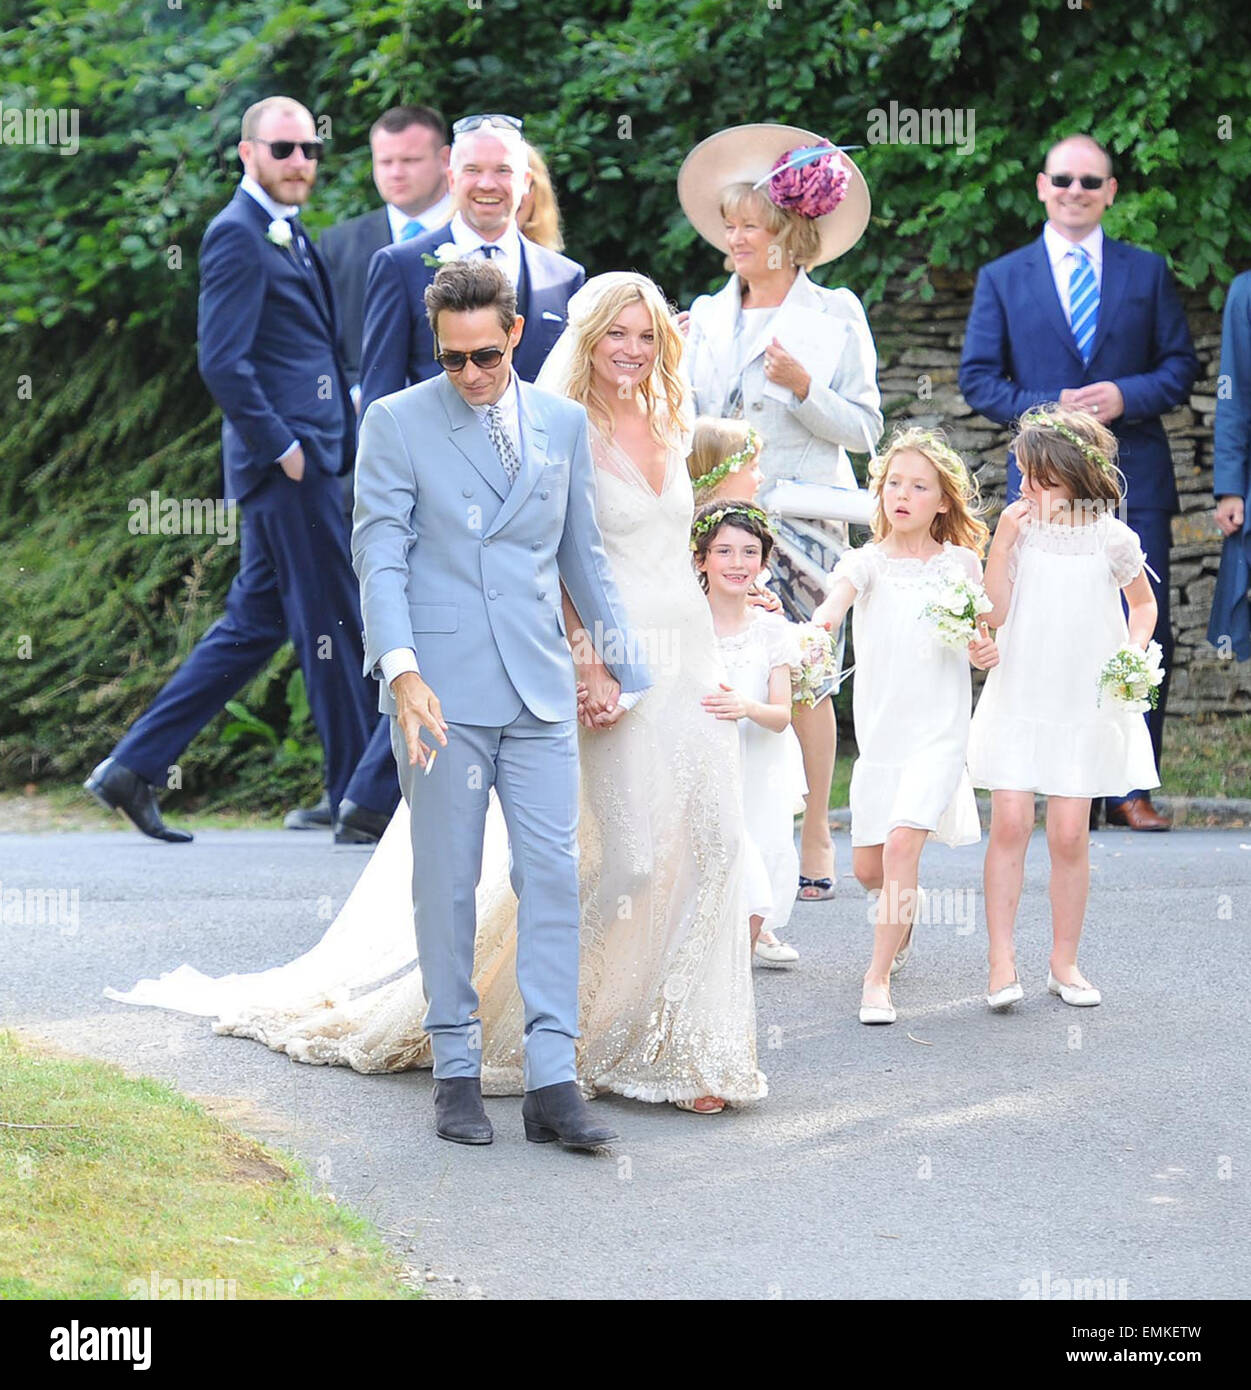 The marriage ceremony of Kate Moss was held in the small old church of St. Margaret 07/02/2011 48